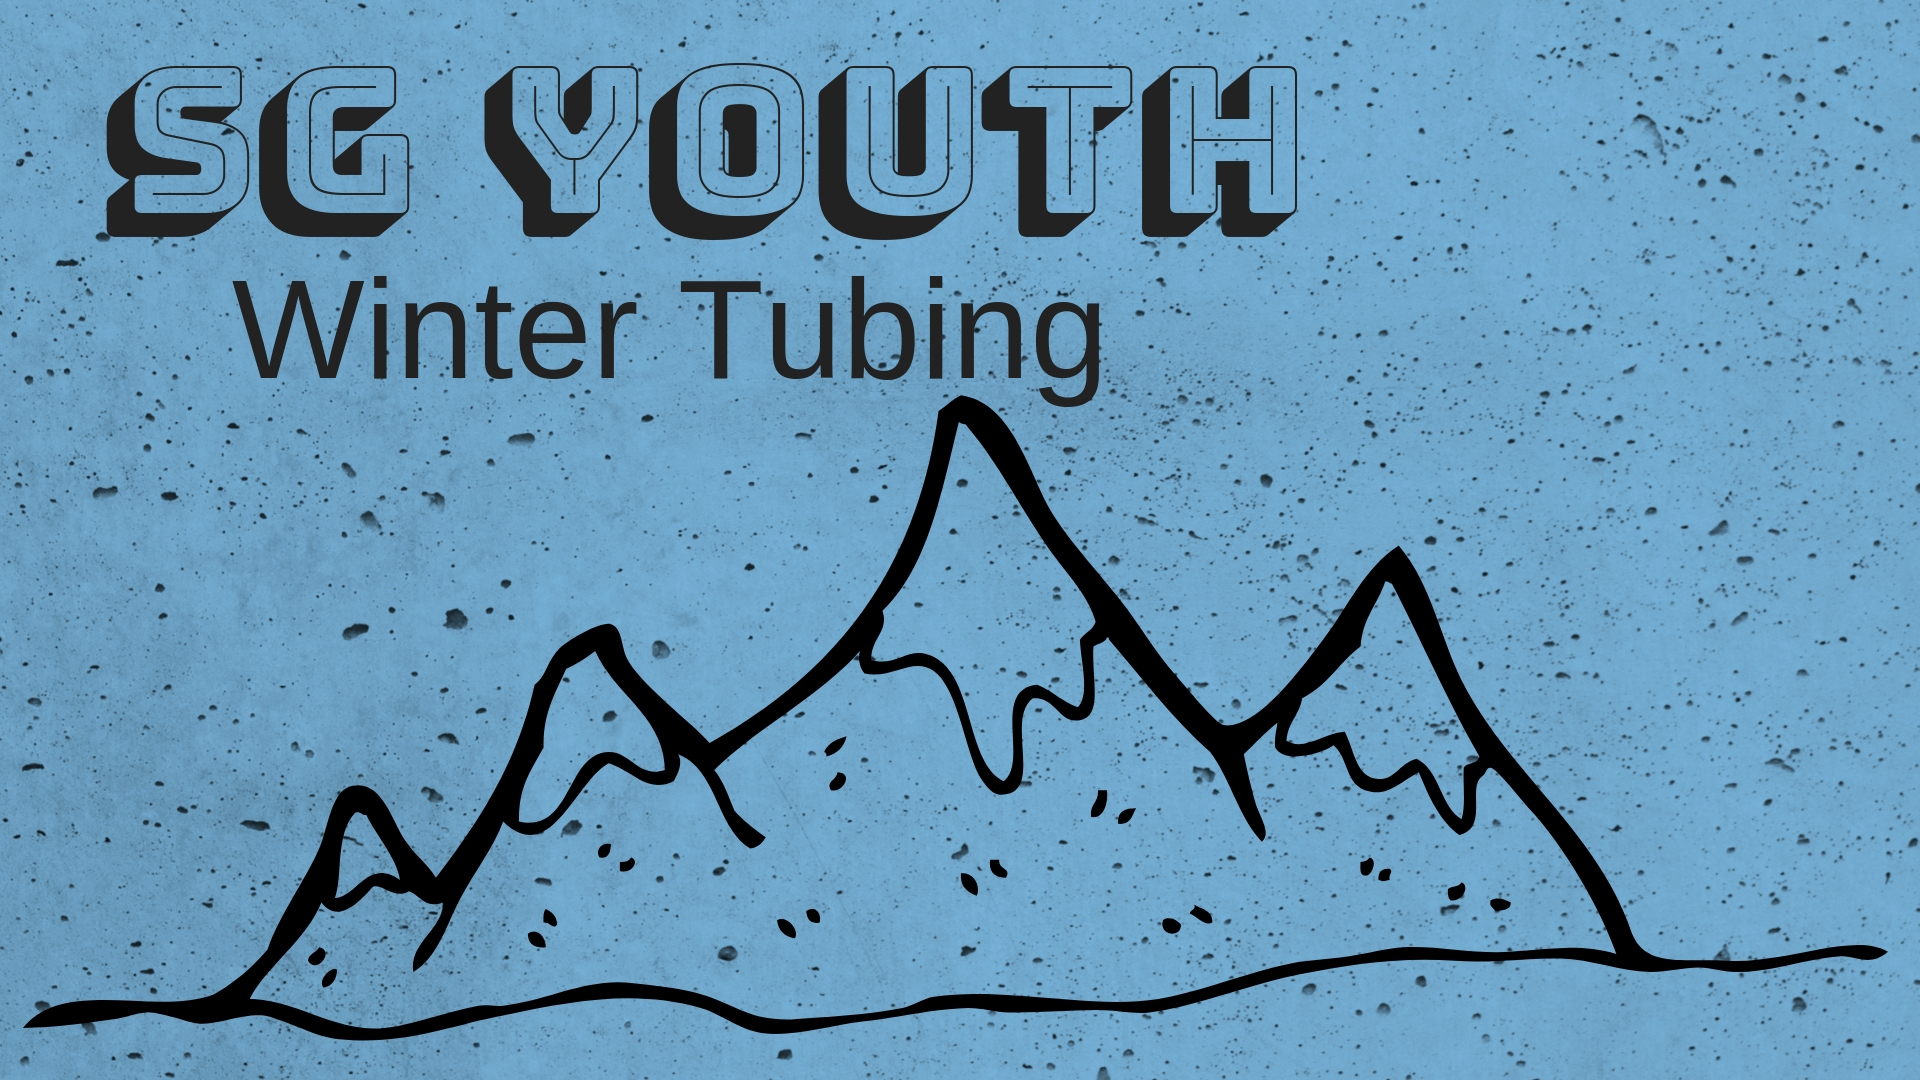 Youth Tubing web_calendar image